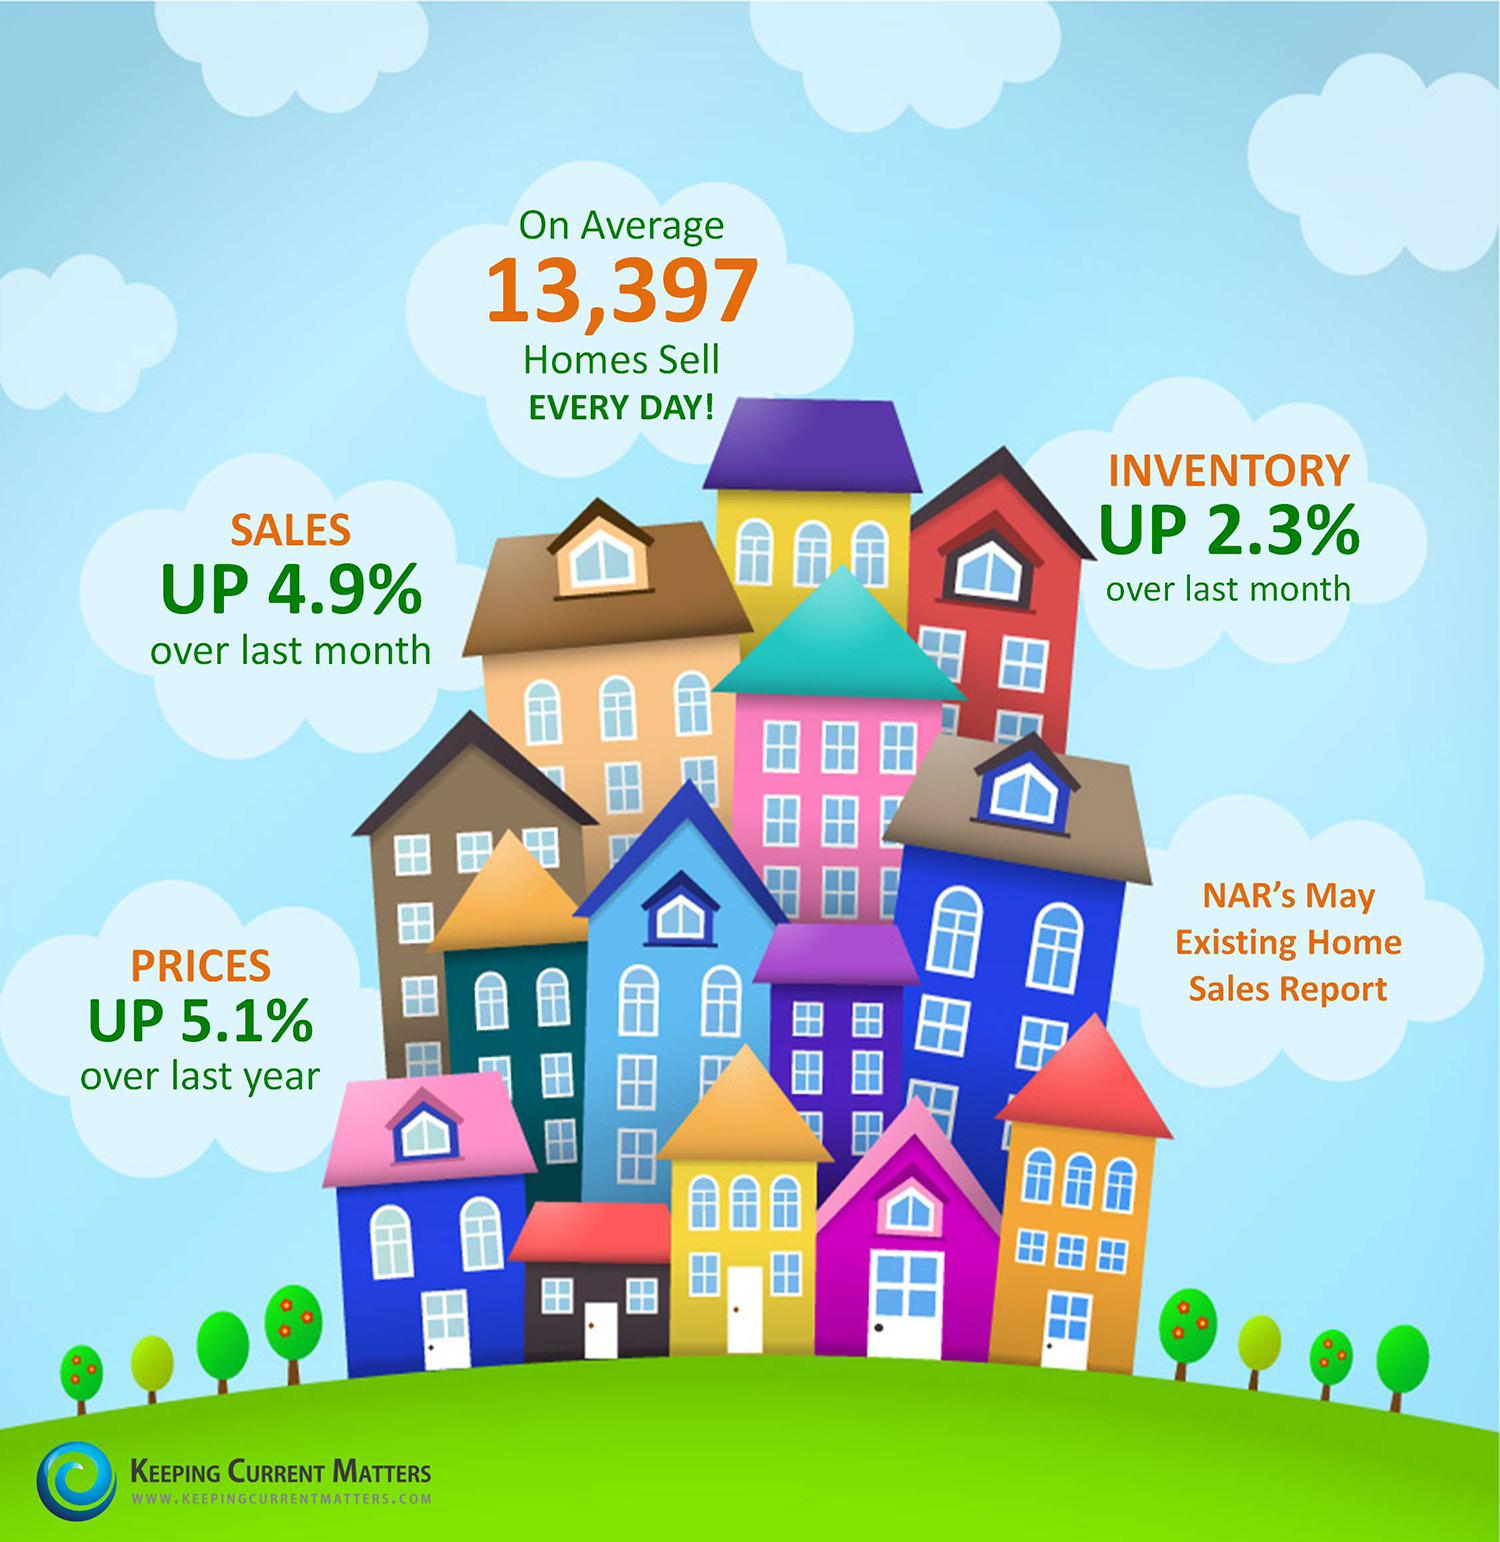 NAR's Existing Home Sales Report   Keeping Current Matters